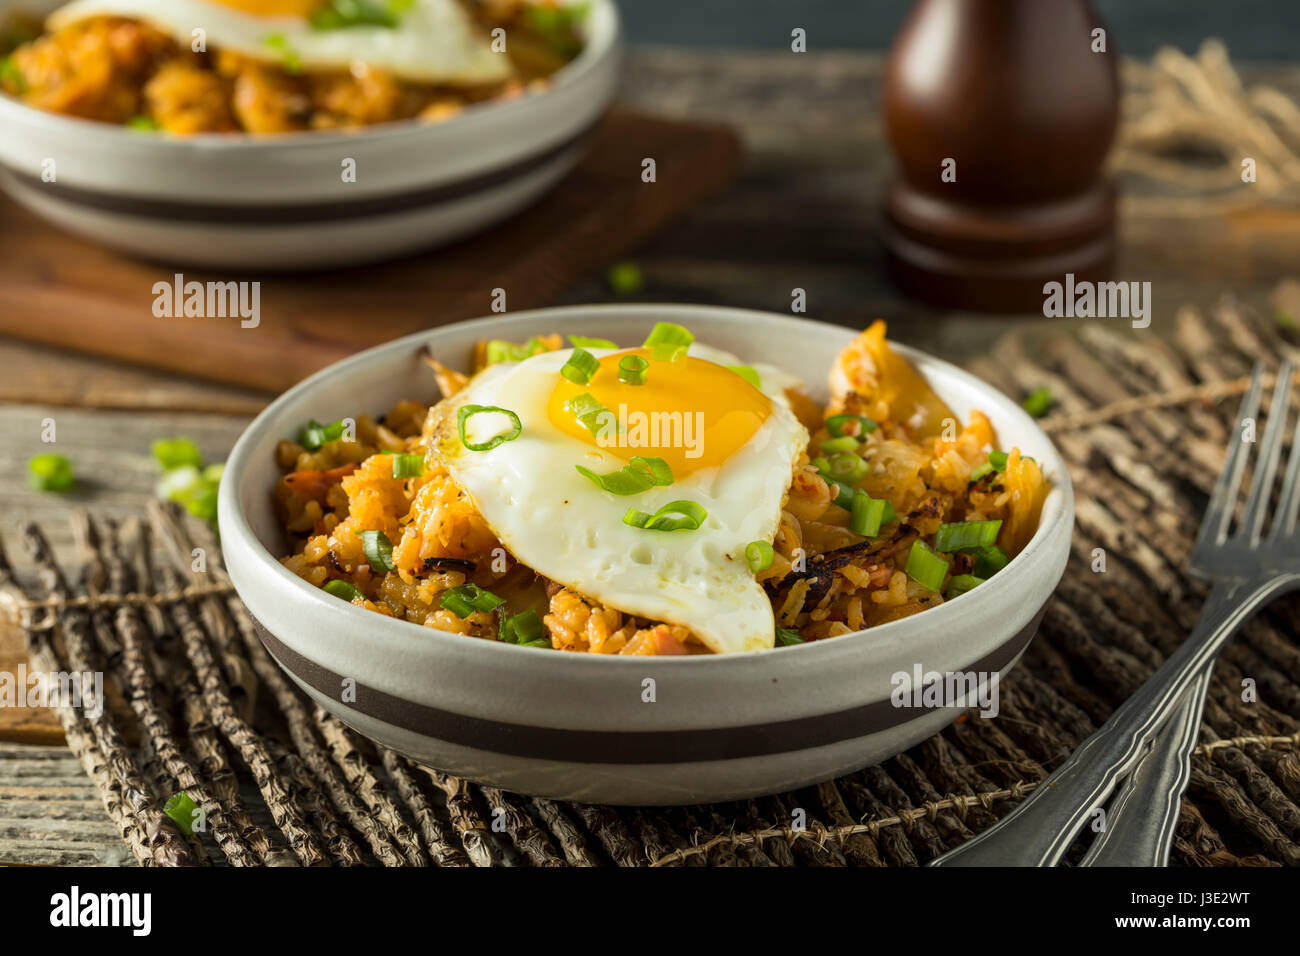 Homemade Korean Kimchi Fried Rice with an Egg - Stock Image